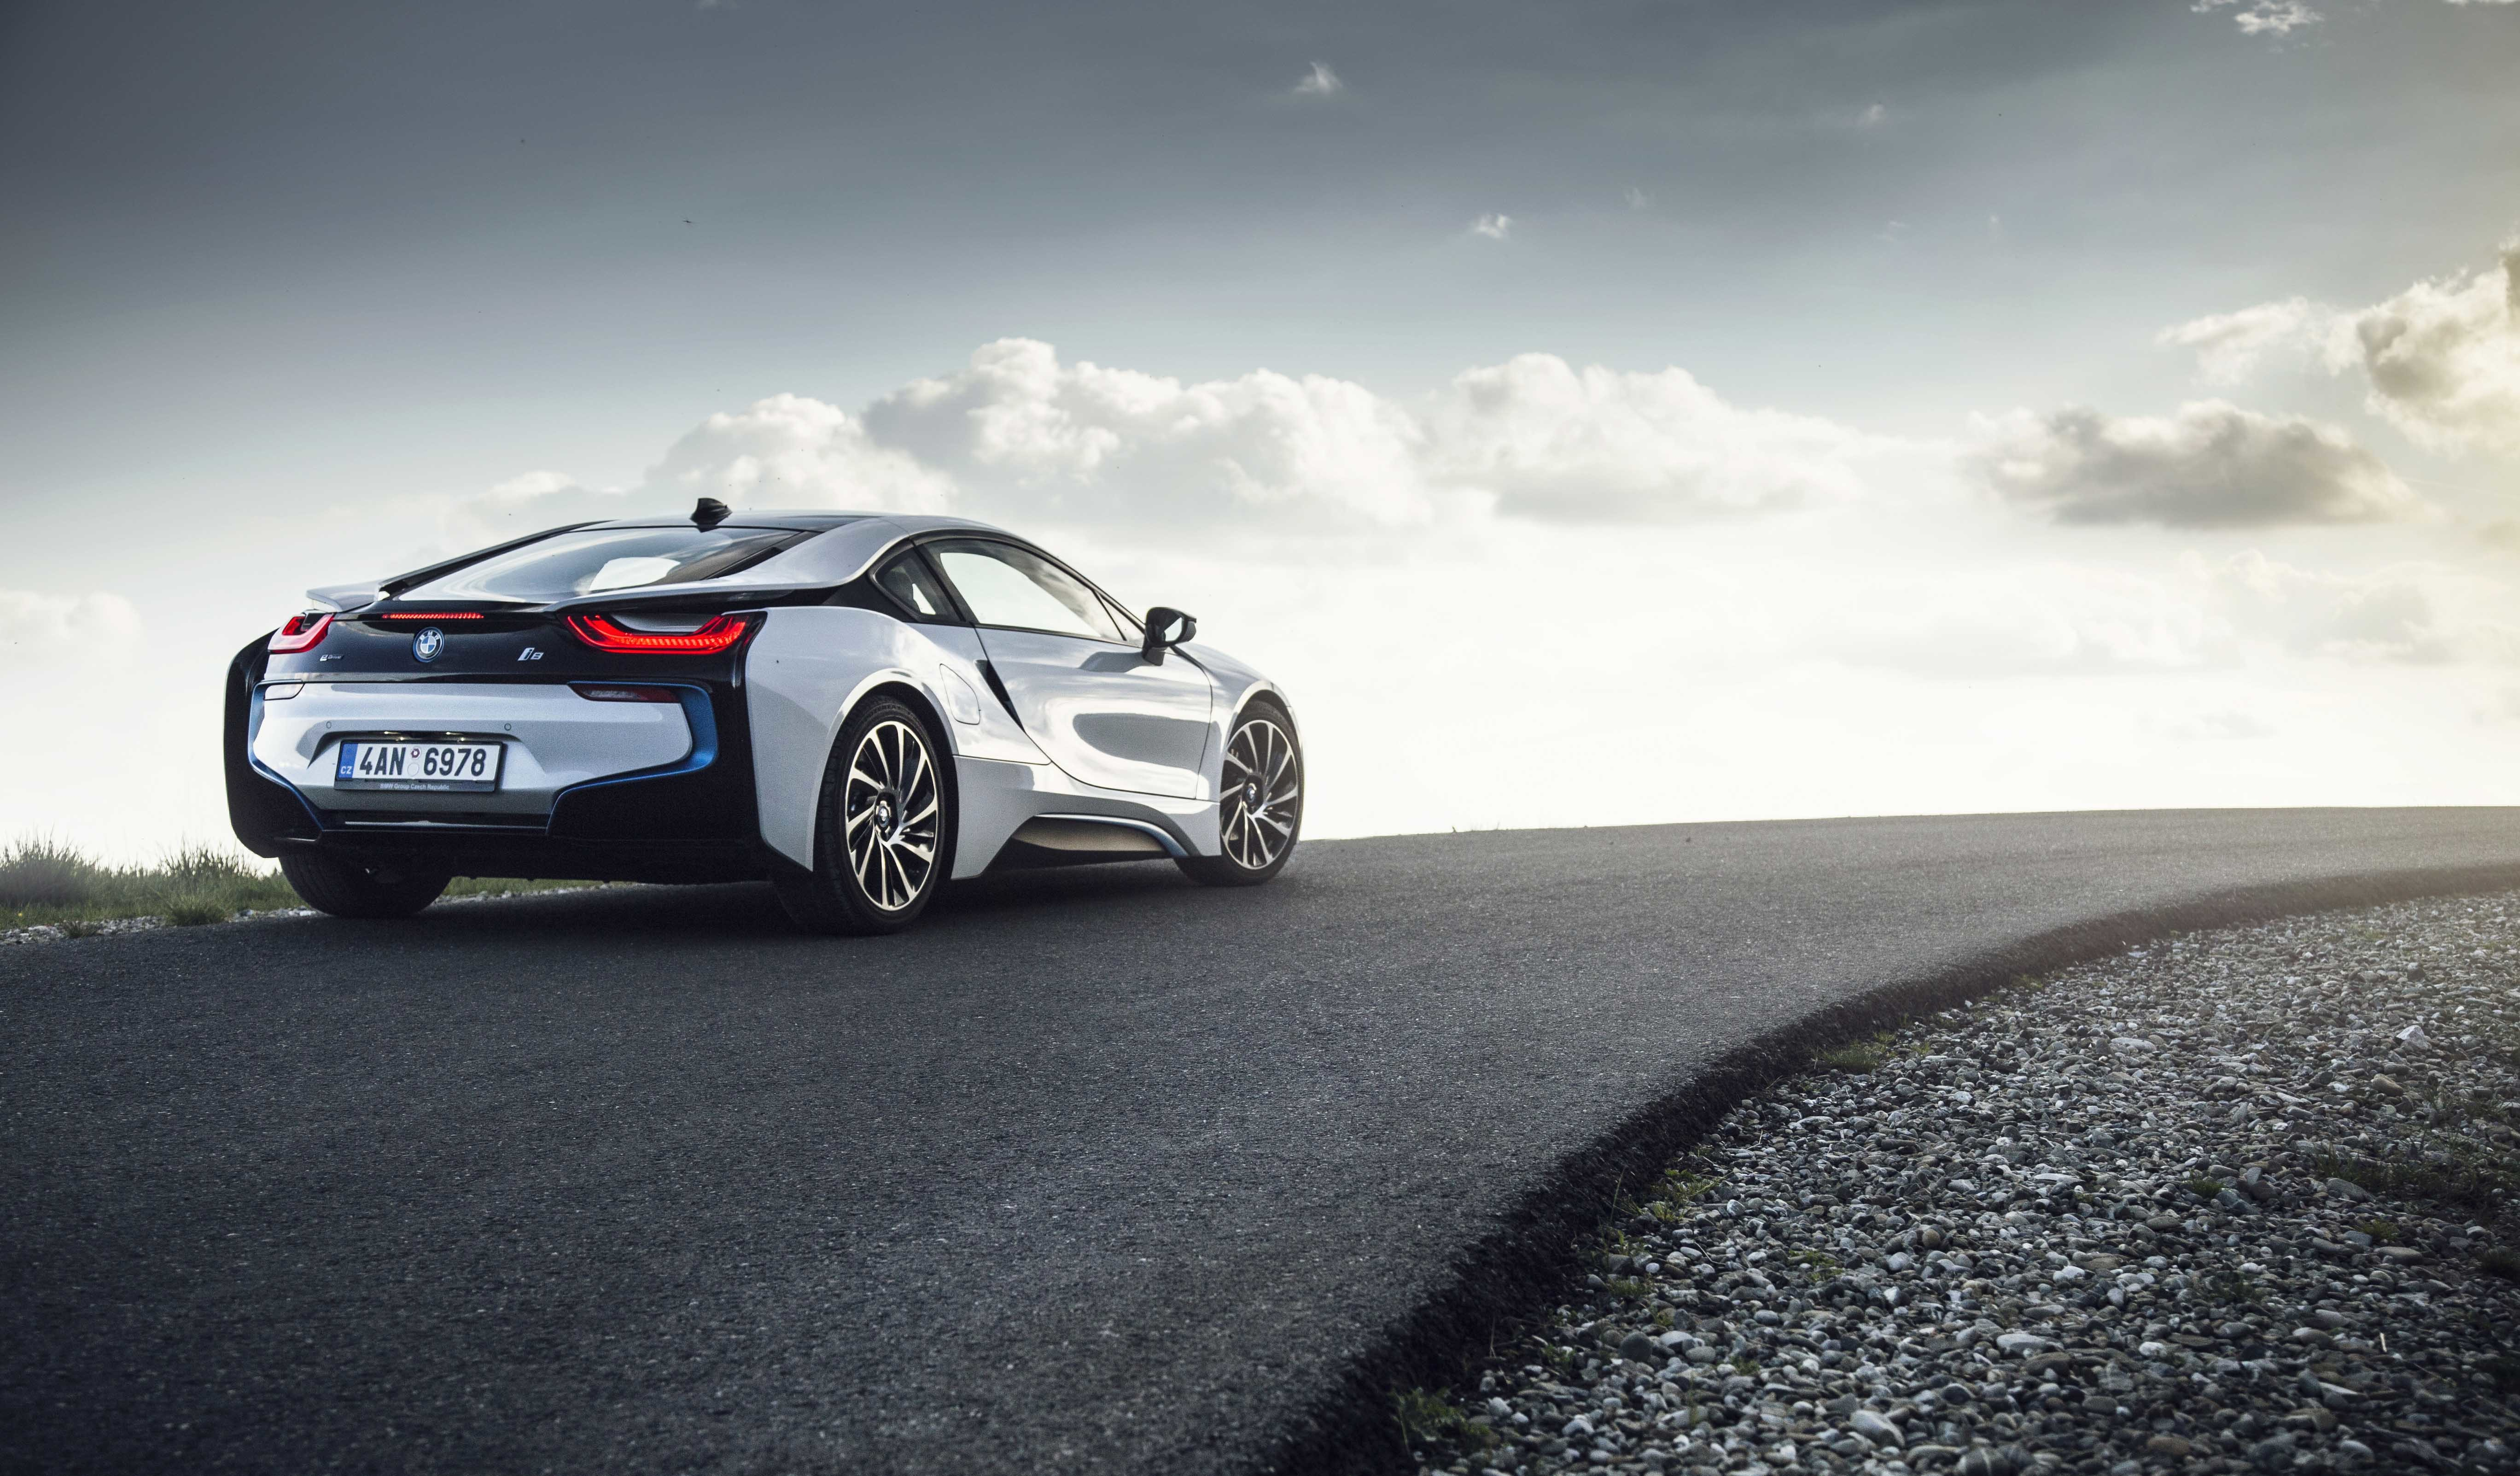 84092 download wallpaper Cars, Road, Back View, Rear View, Bmw I8 screensavers and pictures for free